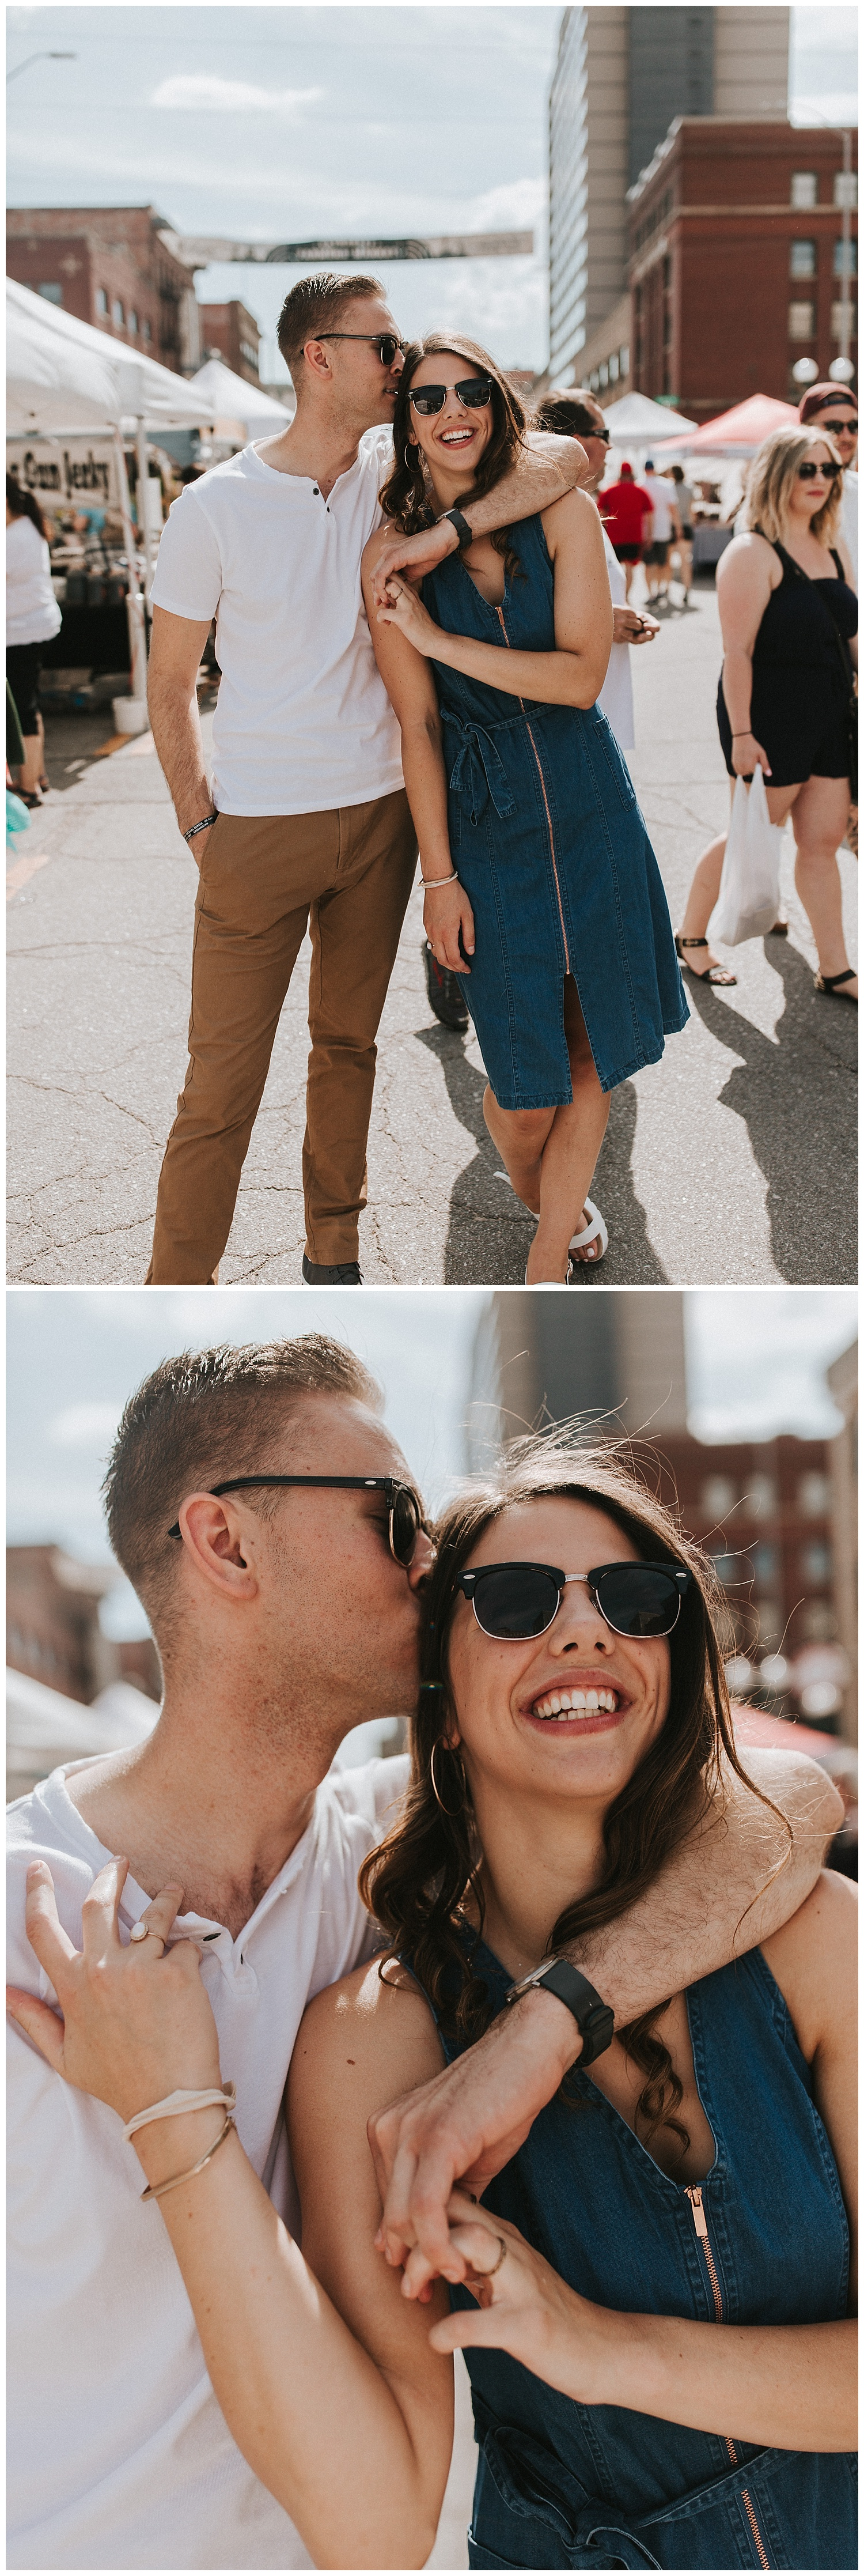 adventurous_photographer_farmers_market_engagement_session_love_midwest_travel_destination_photographer_haley_chicoine_0013.jpg